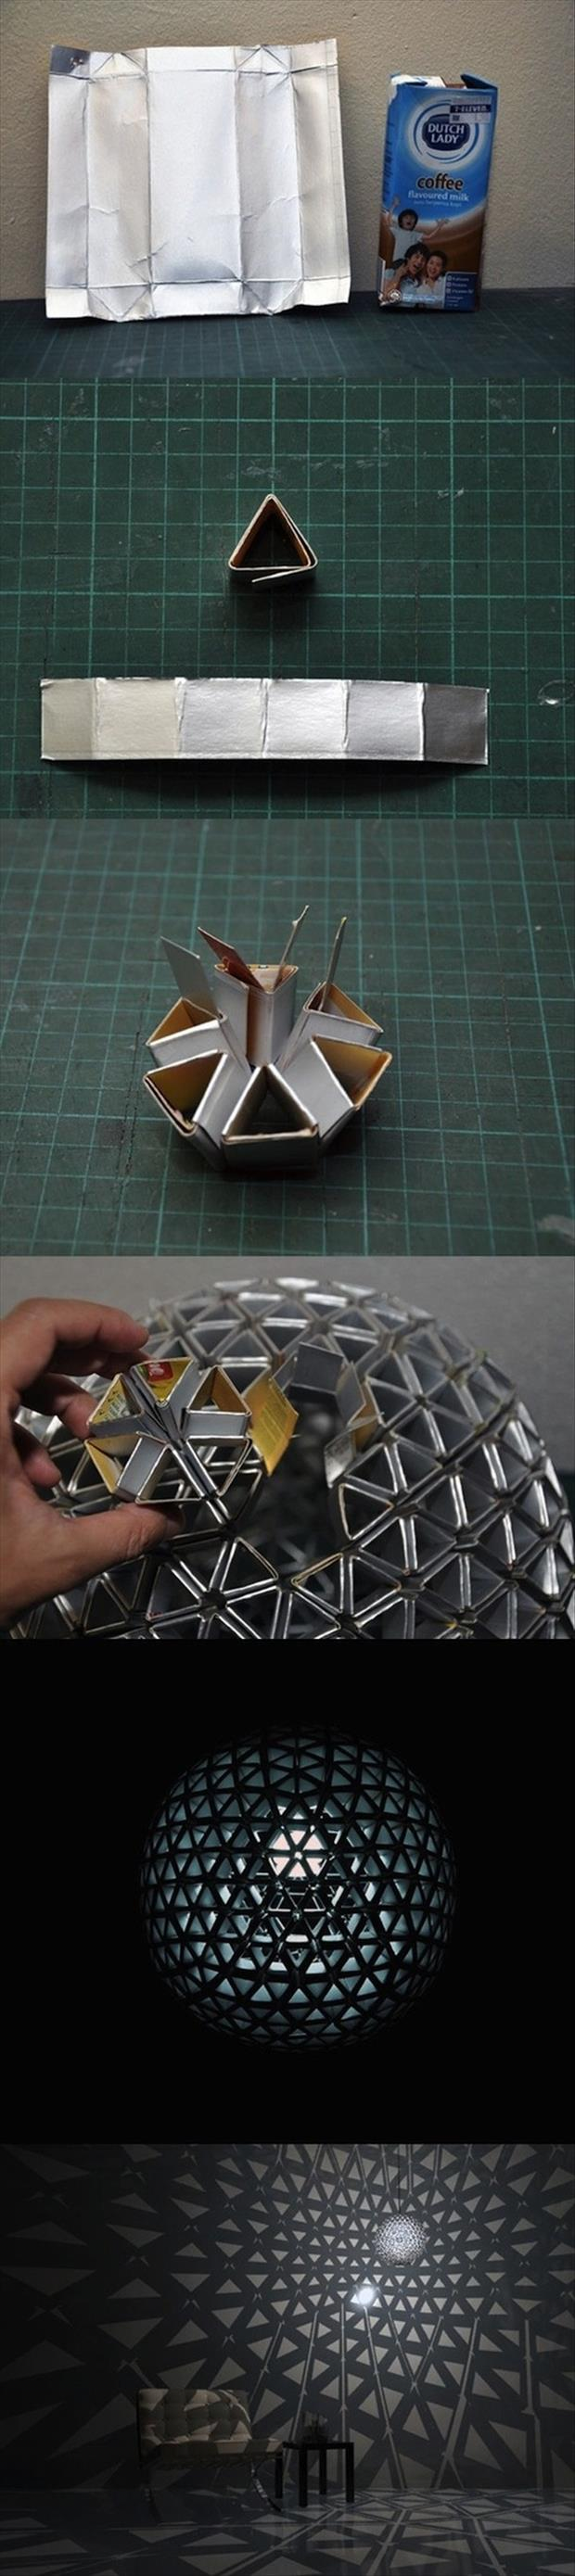 Fun DIY Crafty ideas- geometric light